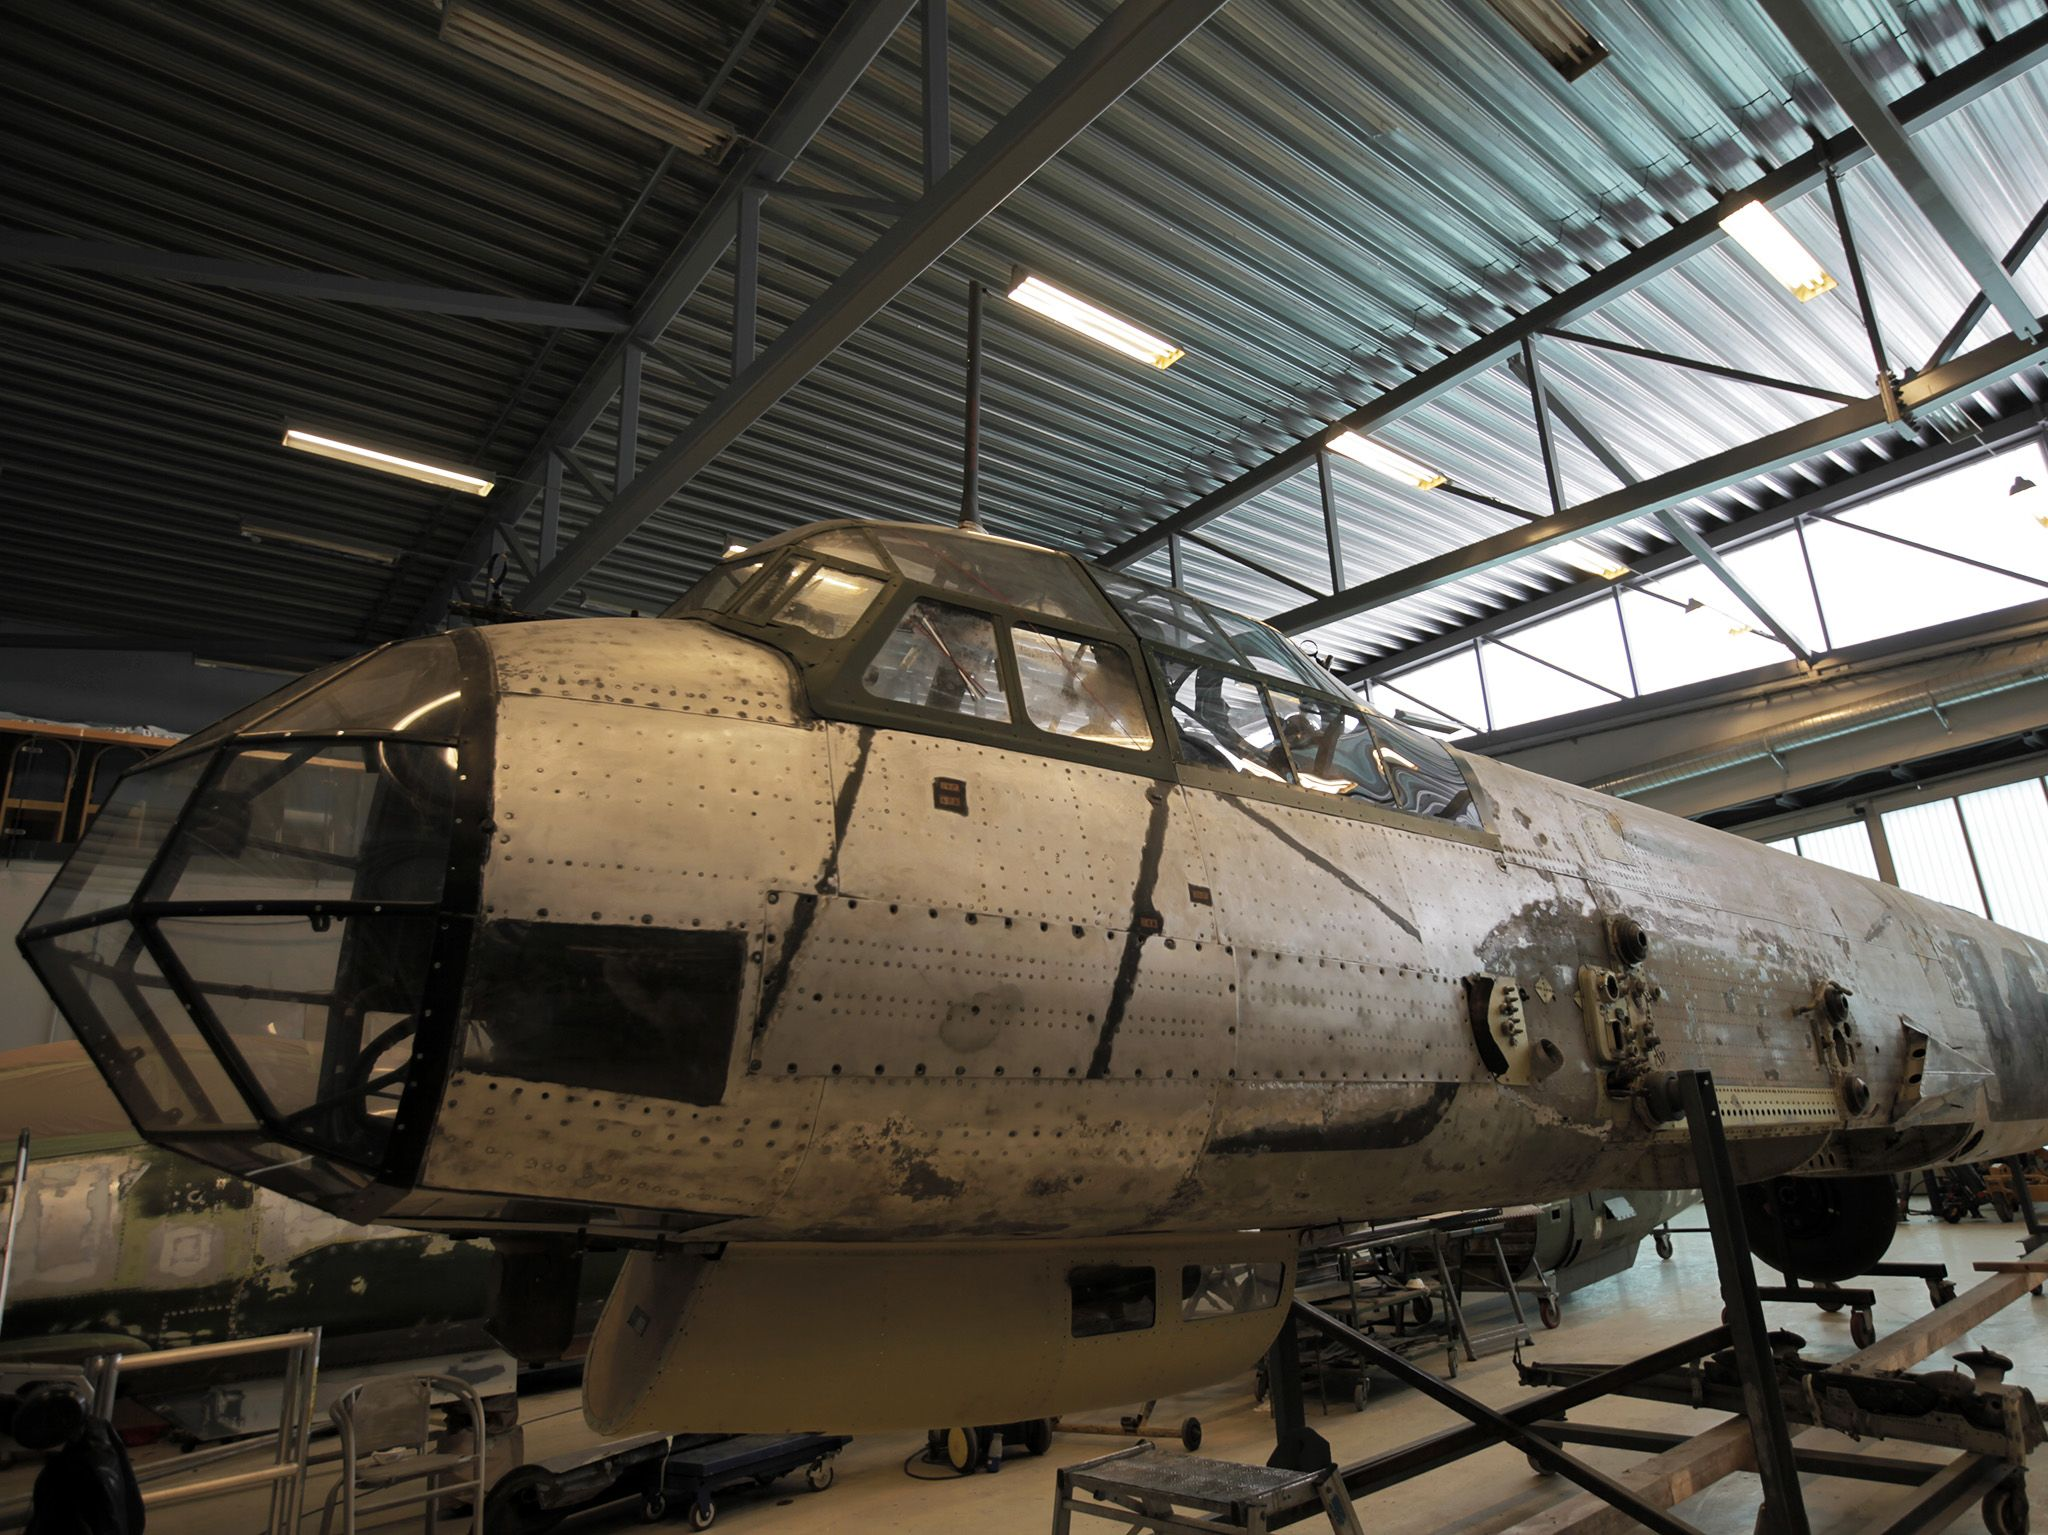 JU88 Bomber Airplane. This image is from Nazi Megastructures: Russia's War. [Photo of the day - June 2018]